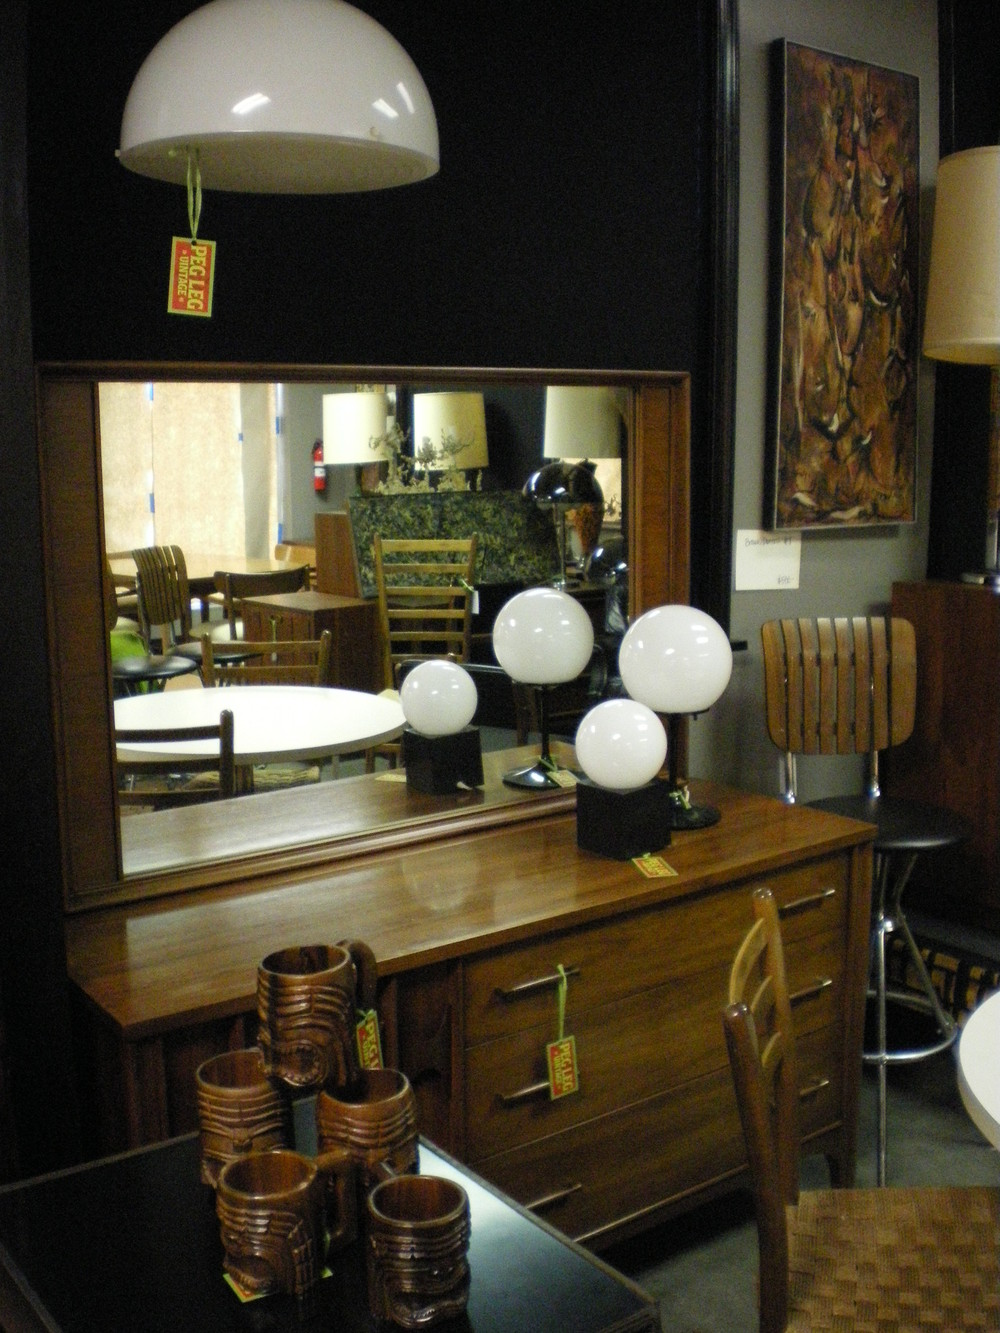 High Quality Peg Leg Offers Affordable Vintage Furnishings From Virtually Every Bygone  Era And Style. When You Visit Our Convenient Location In College Park  Maryland, ...